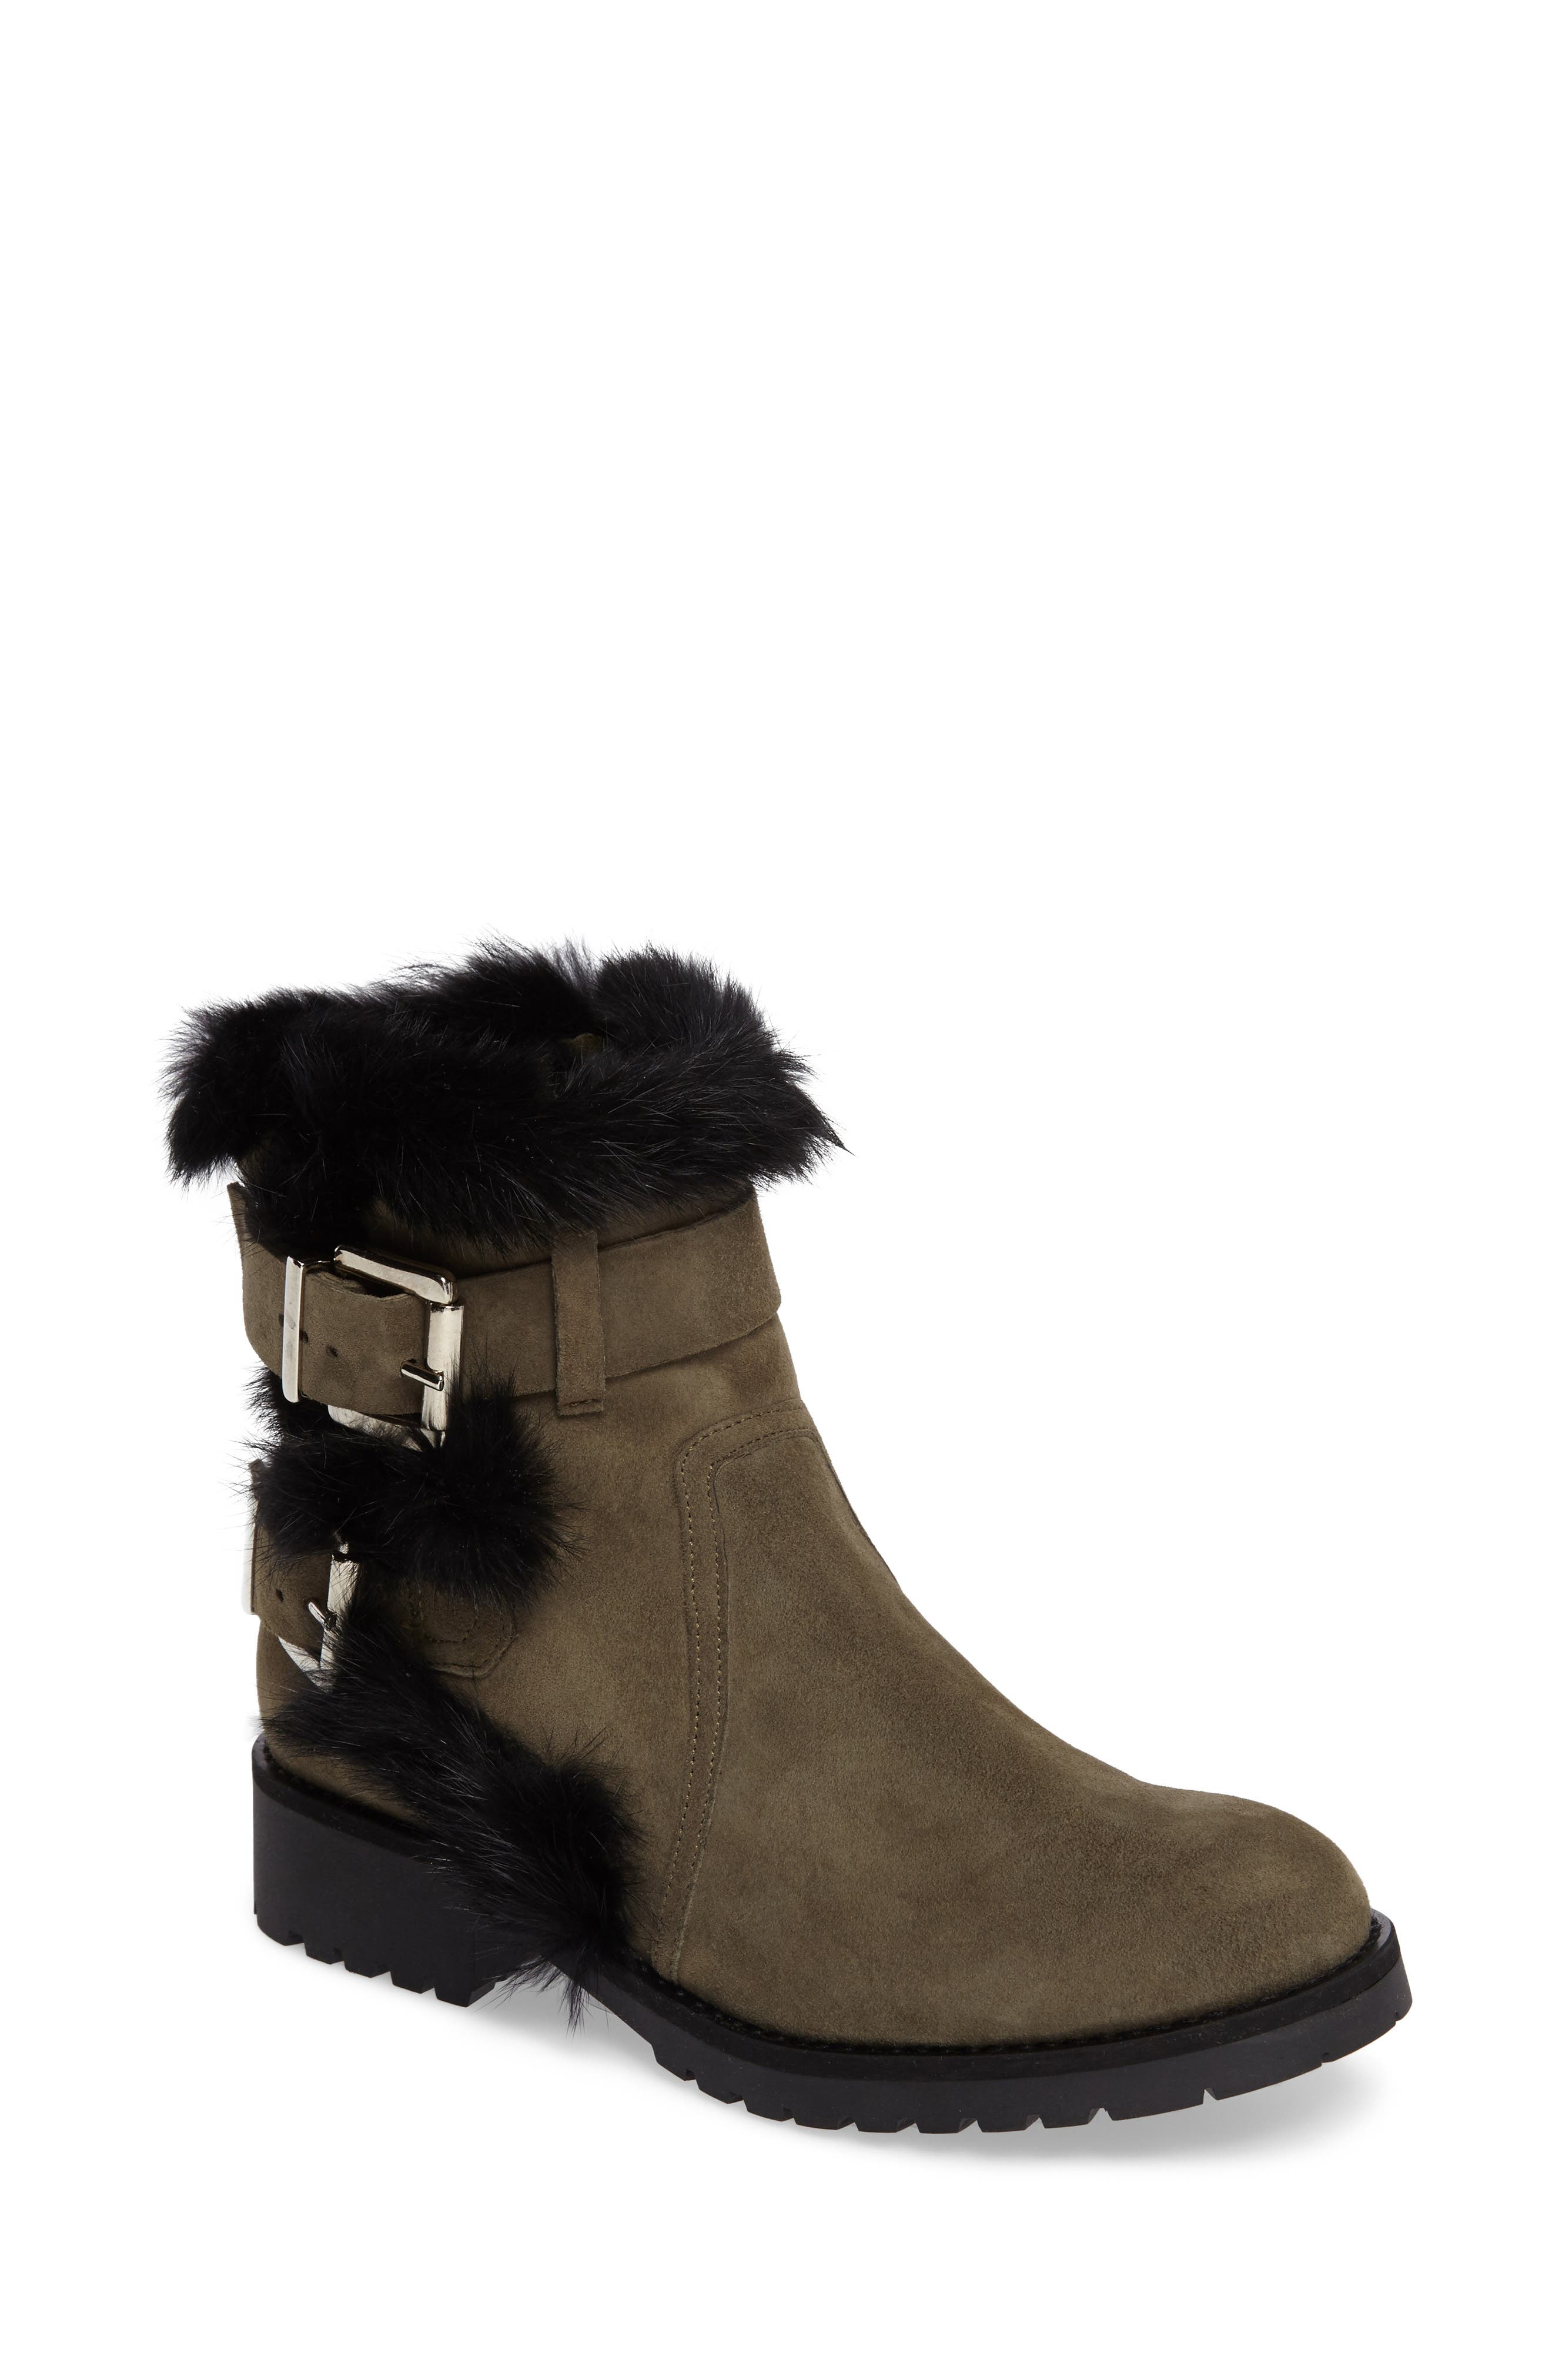 Main Image - Charles David Rustic Genuine Rabbit Fur Cuff Boot (Women)